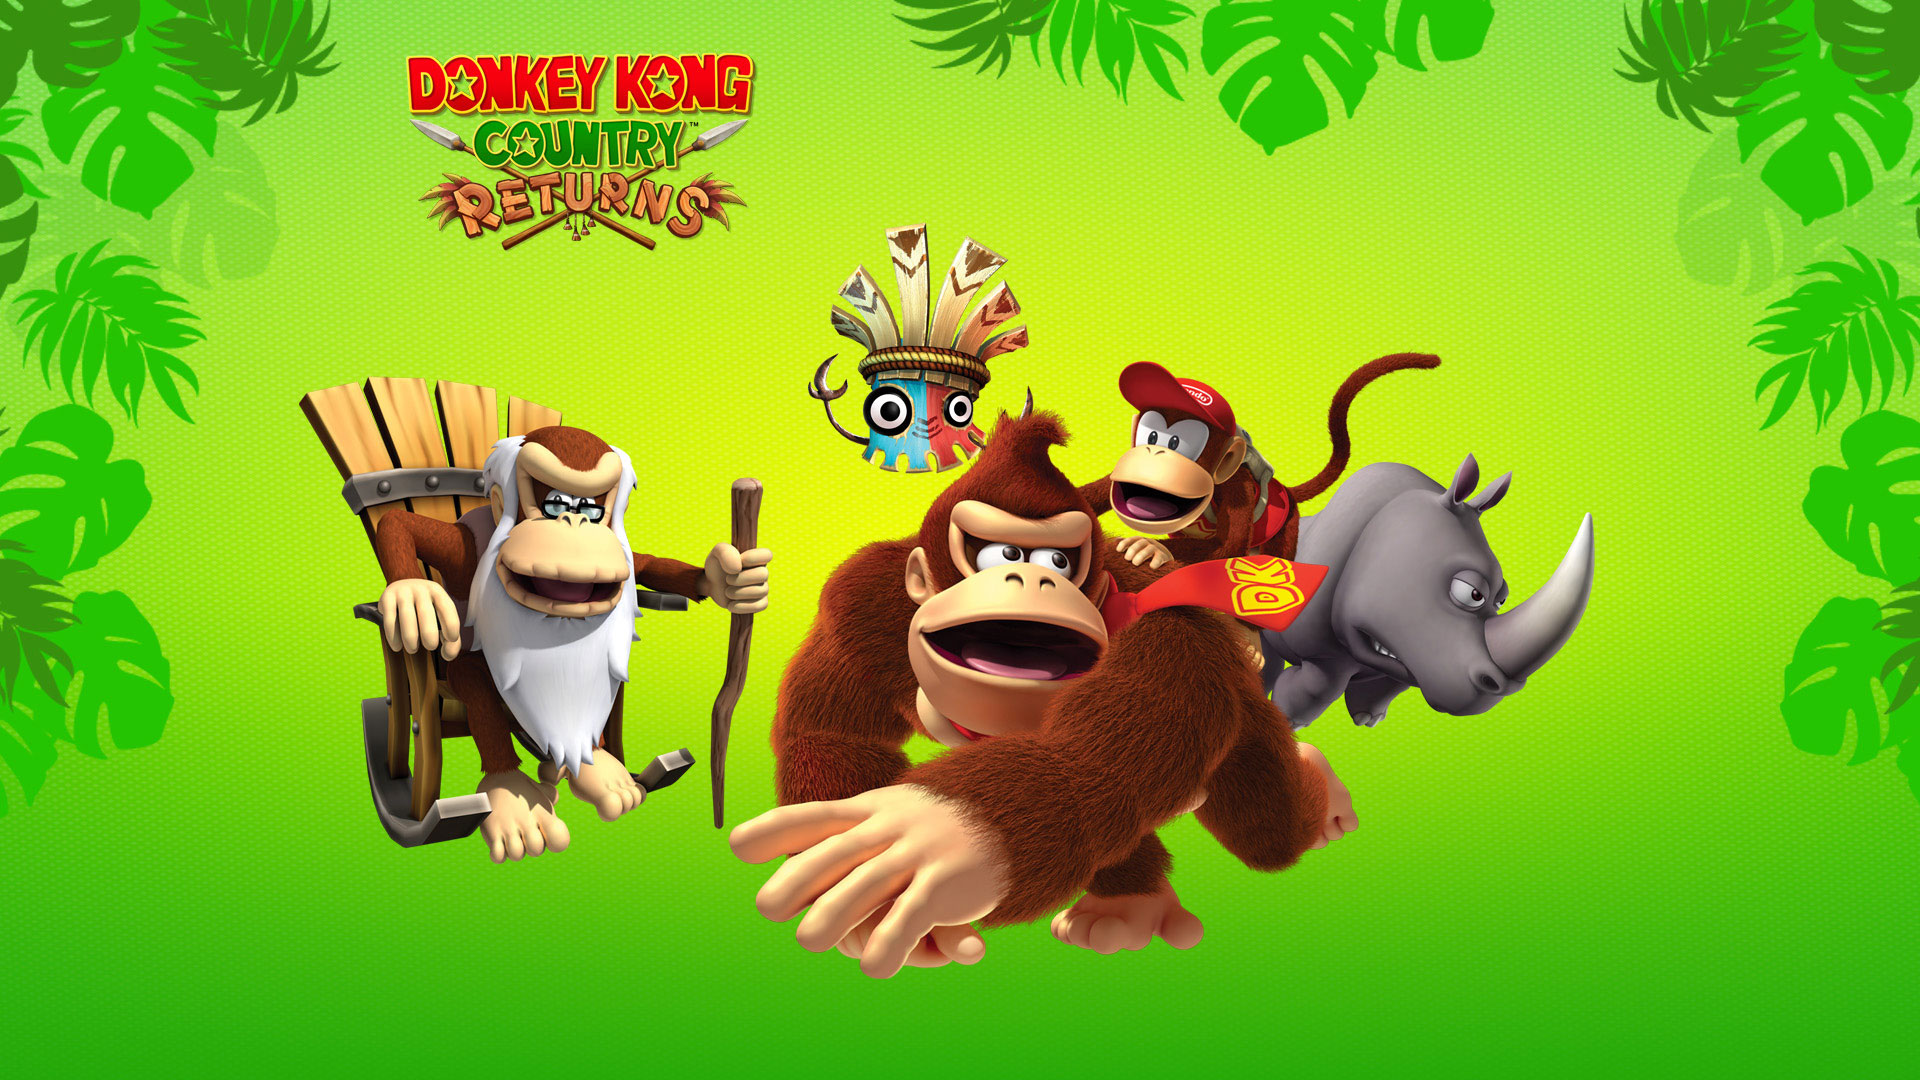 Free Download Donkey Kong Country Returns 1080p Wallpaper Donkey